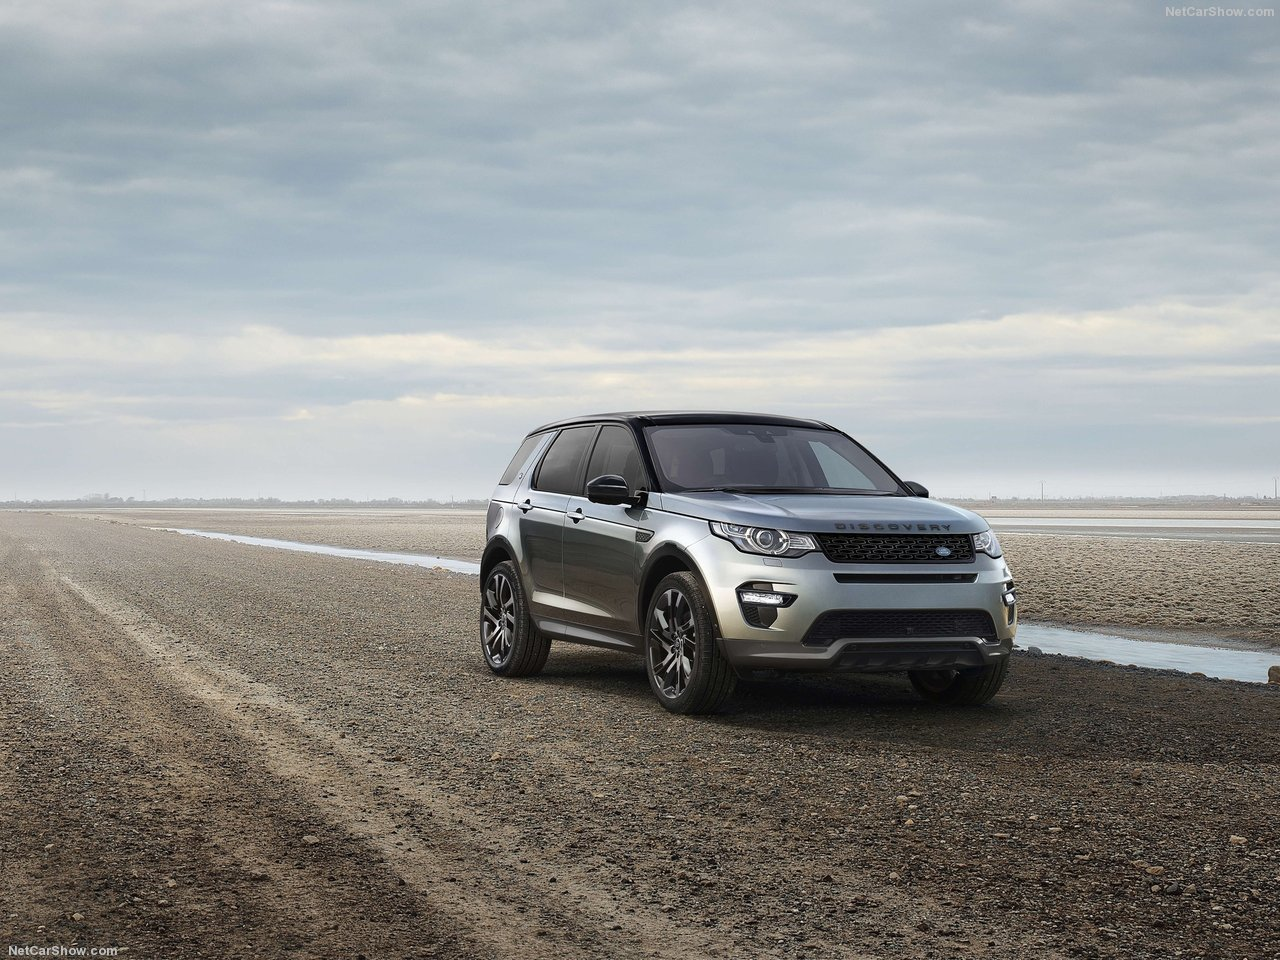 land_rover-discovery_sport_dynamic-2016-1280-01